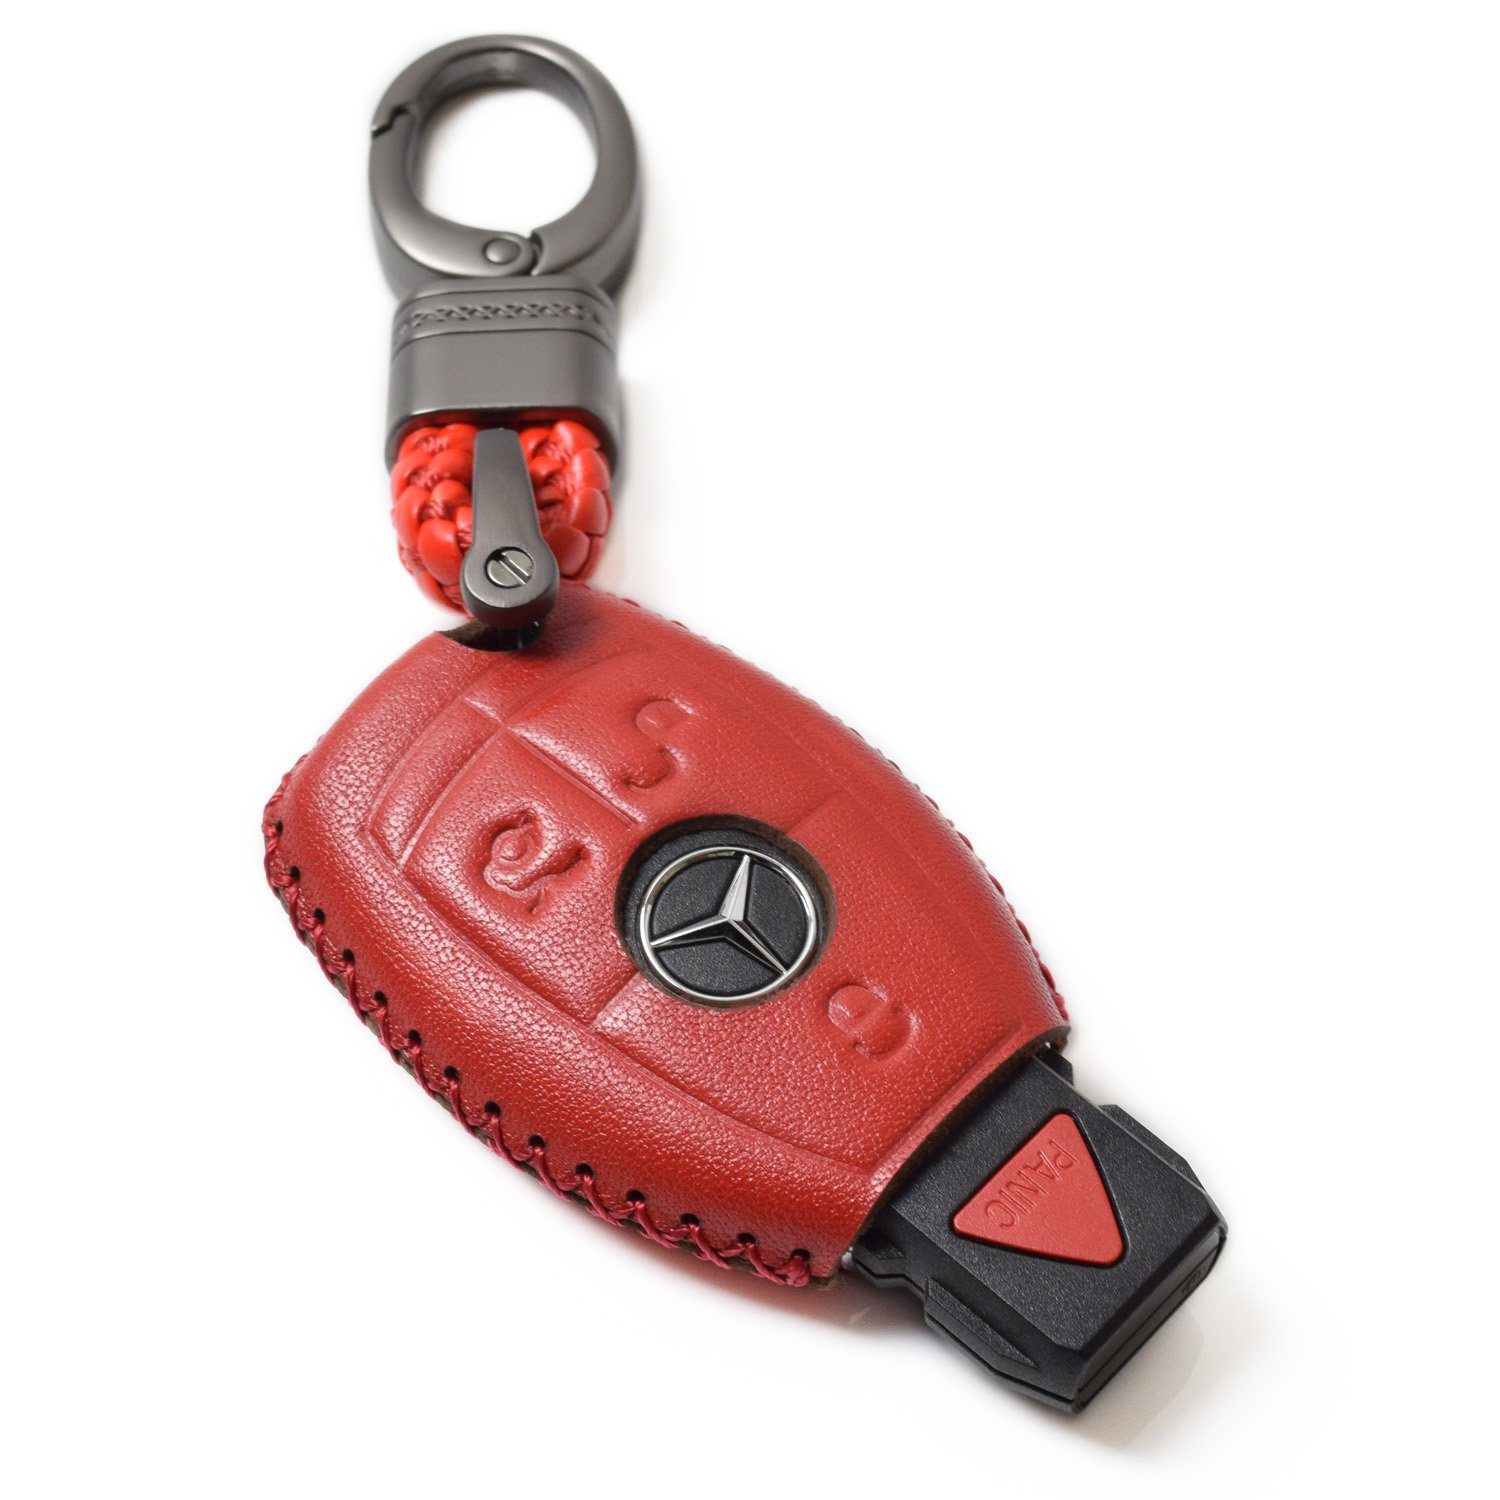 Vitodeco 4 Buttons Leather Keyless Entry Remote Control Smart Key Case Cover with a Key Chain for Lexus Brown